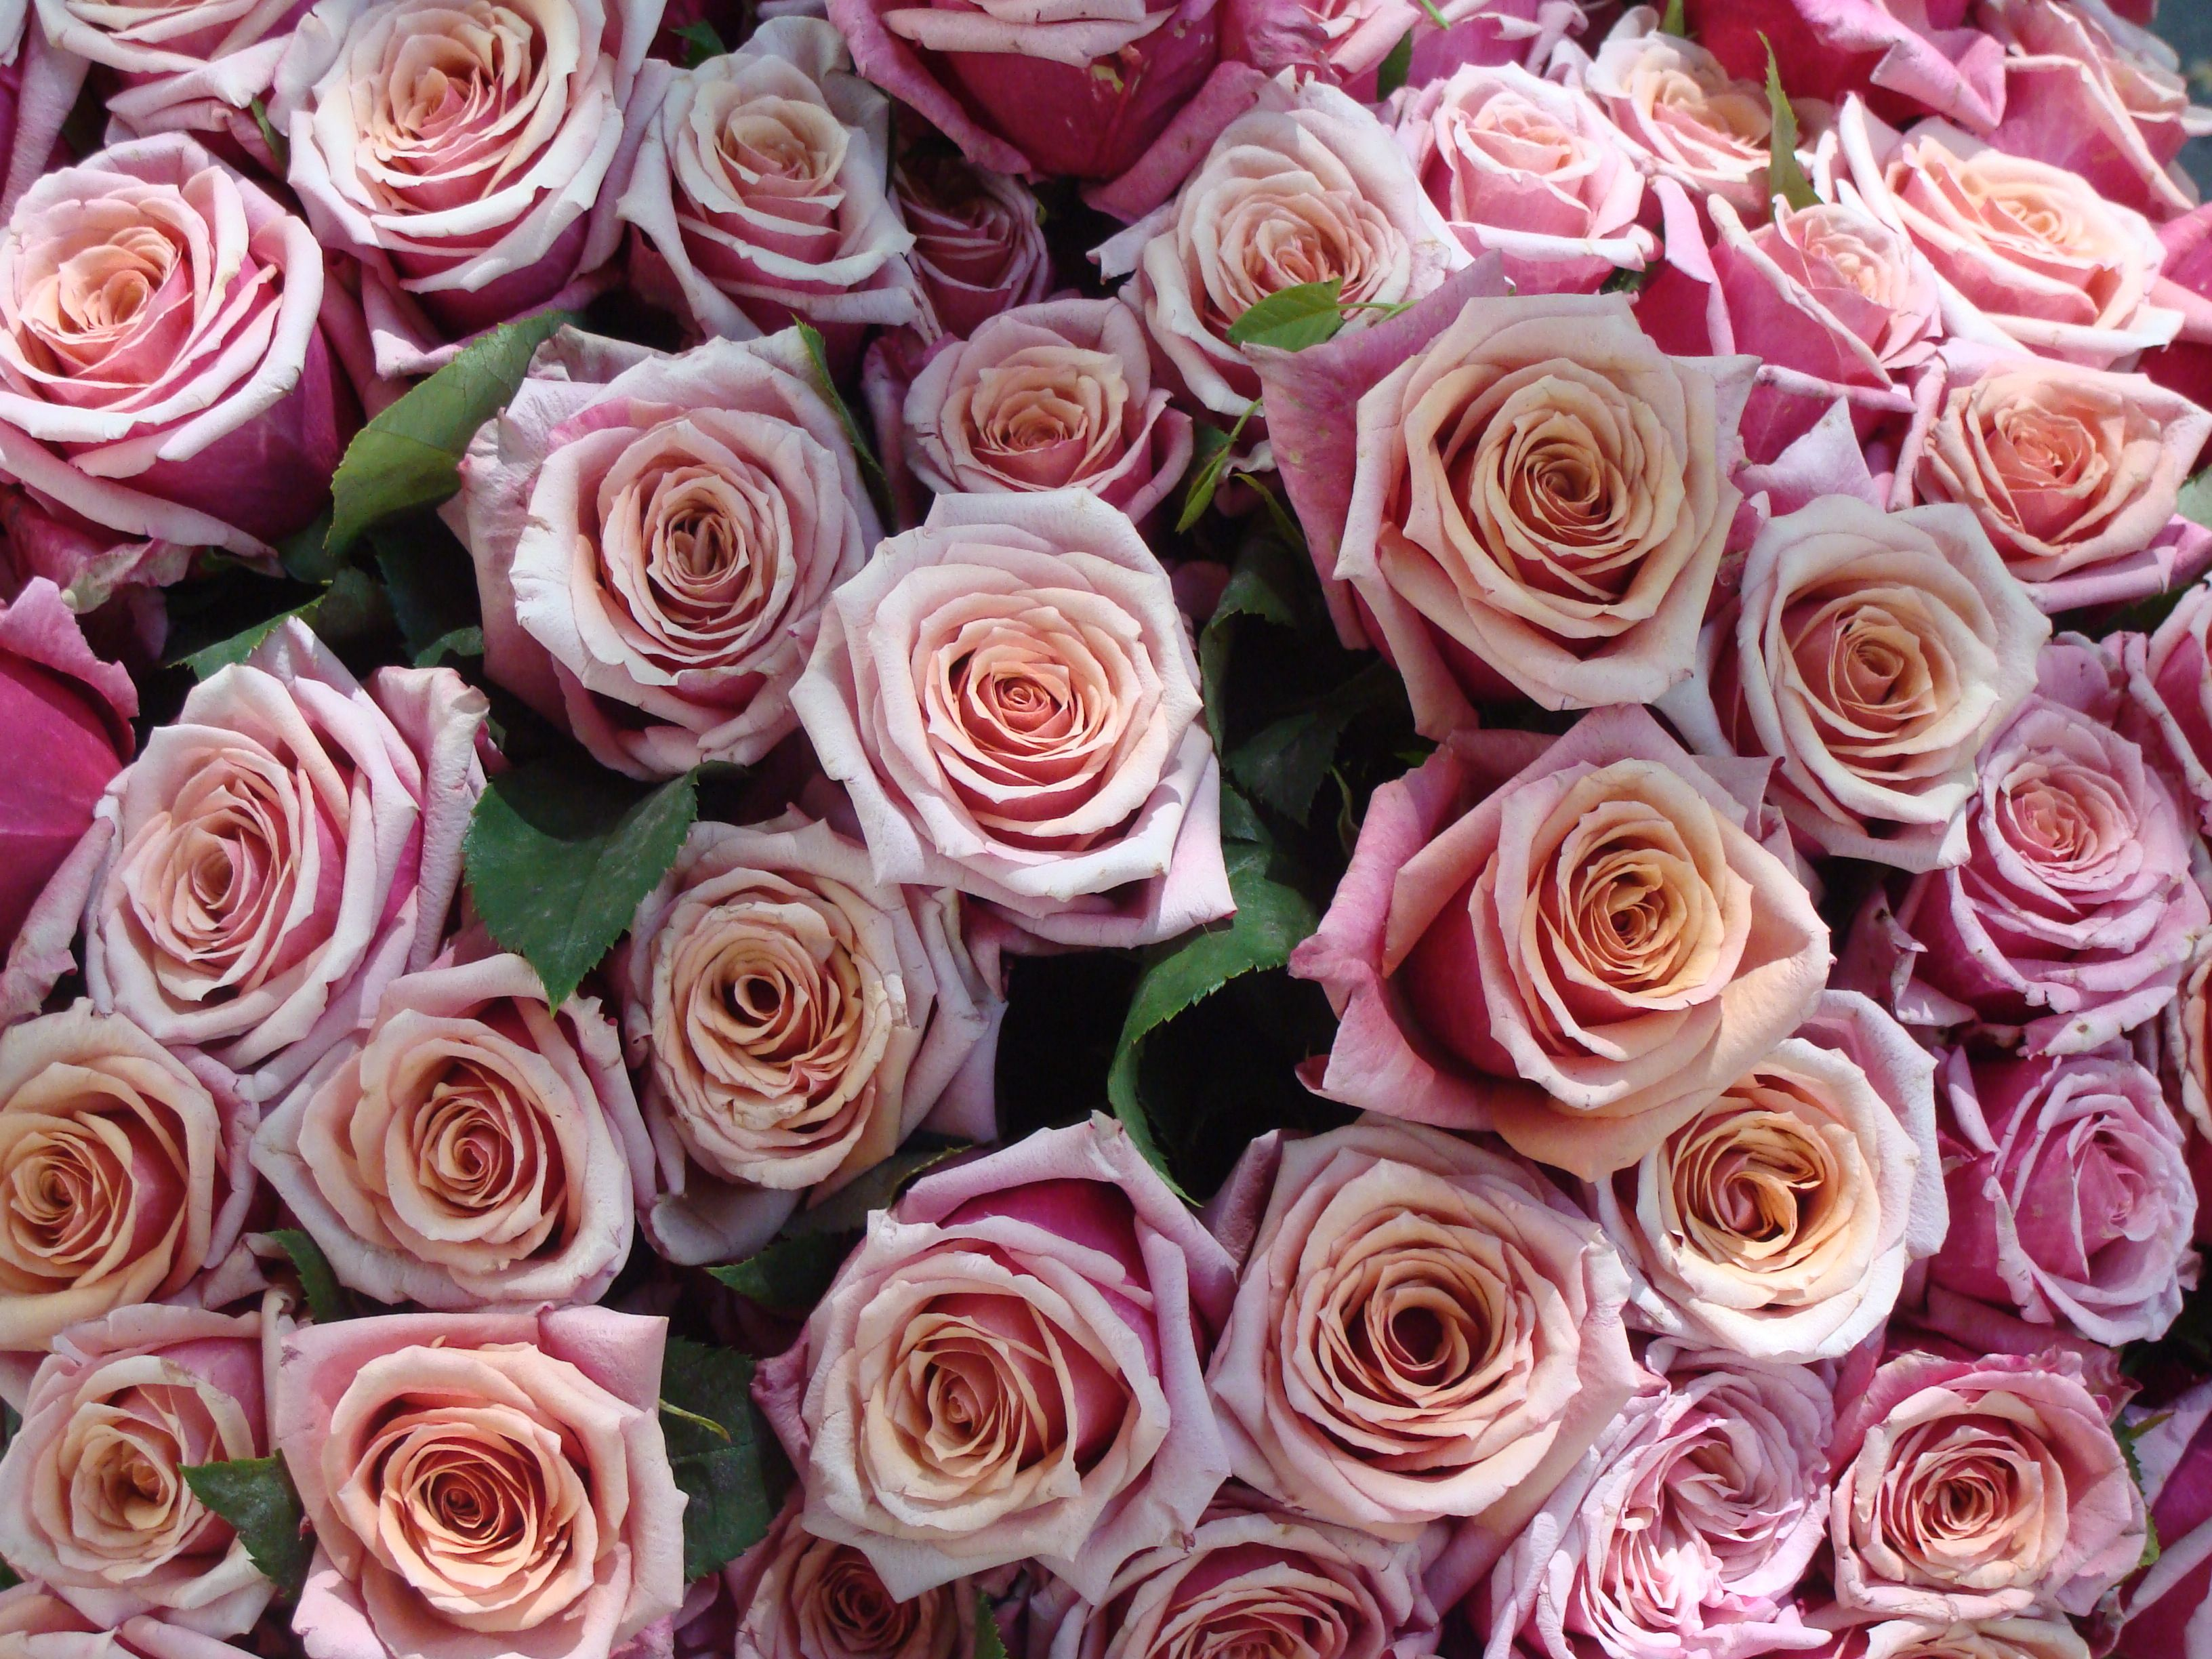 Google Image Result for http://upload.wikimedia.org/wikipedia/commons/0/00/Bouquet_de_roses_roses.jpg